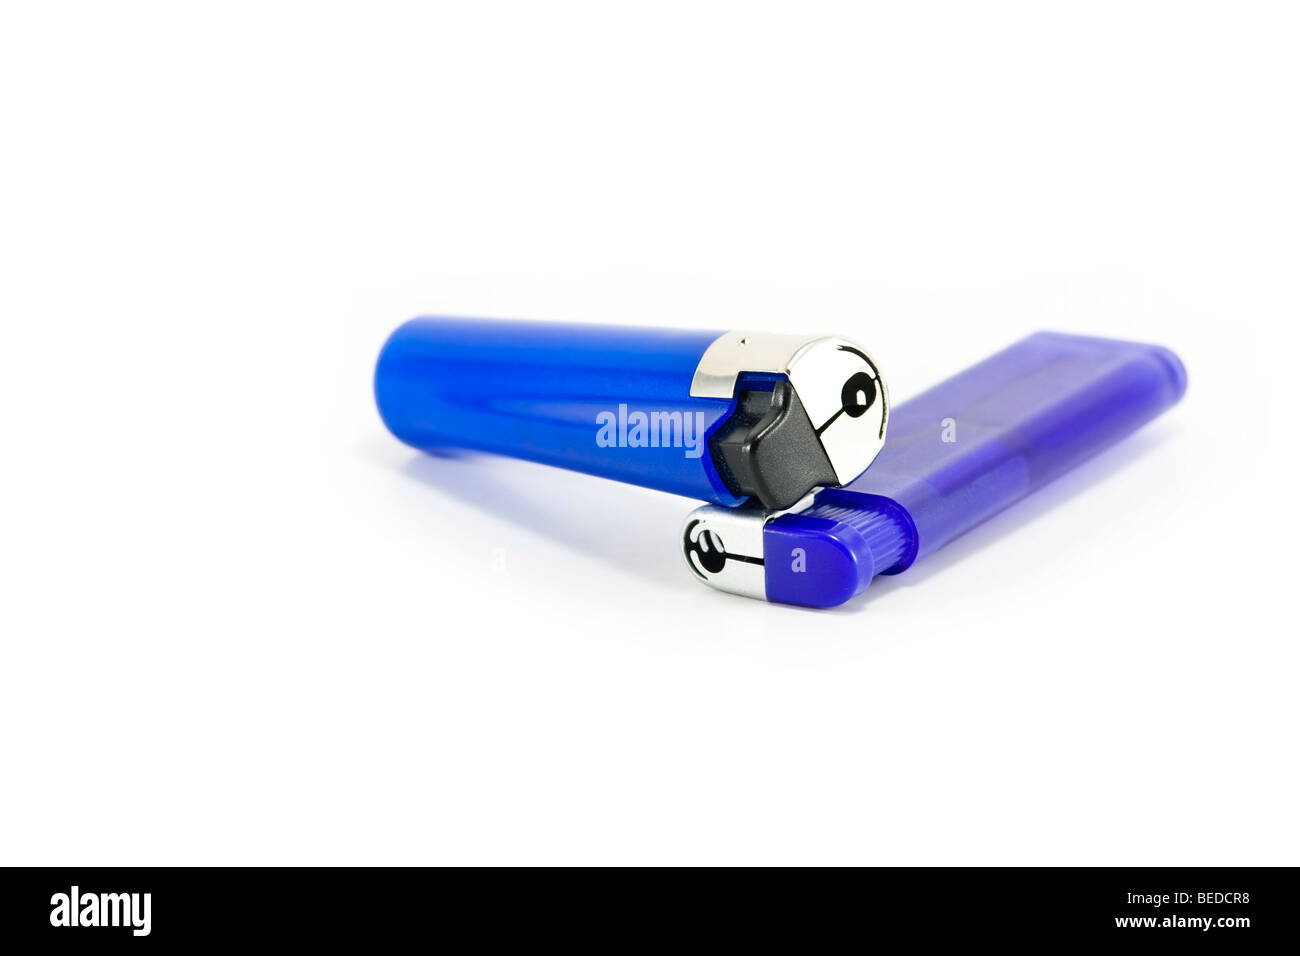 Two blue plastic lighters isolated on white - Stock Image